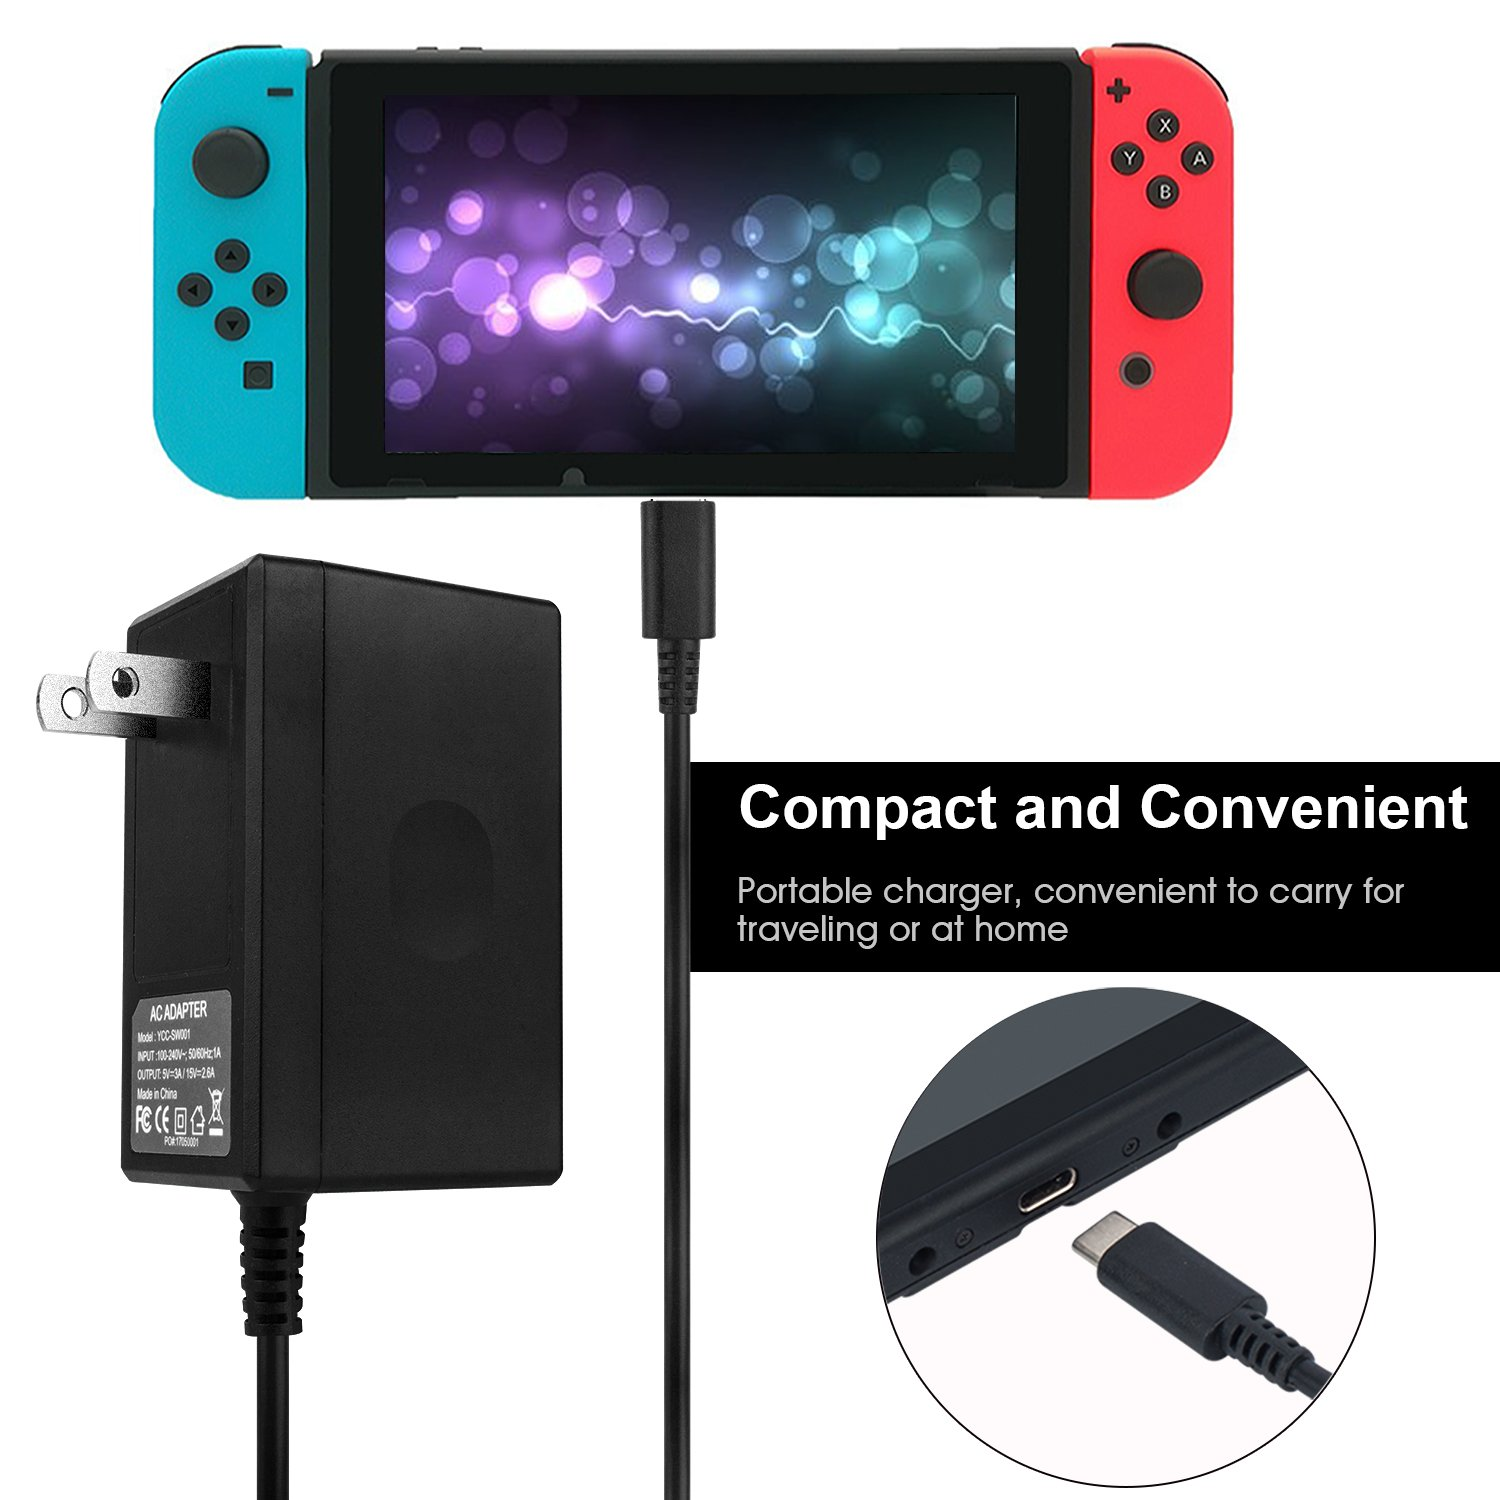 Charger for Nintendo Switch, Portable AC Adapter with 5ft Power Charging Cable for Nintendo Switch Dock/Pro Controller, Support TV Mode and NC 5.0 system